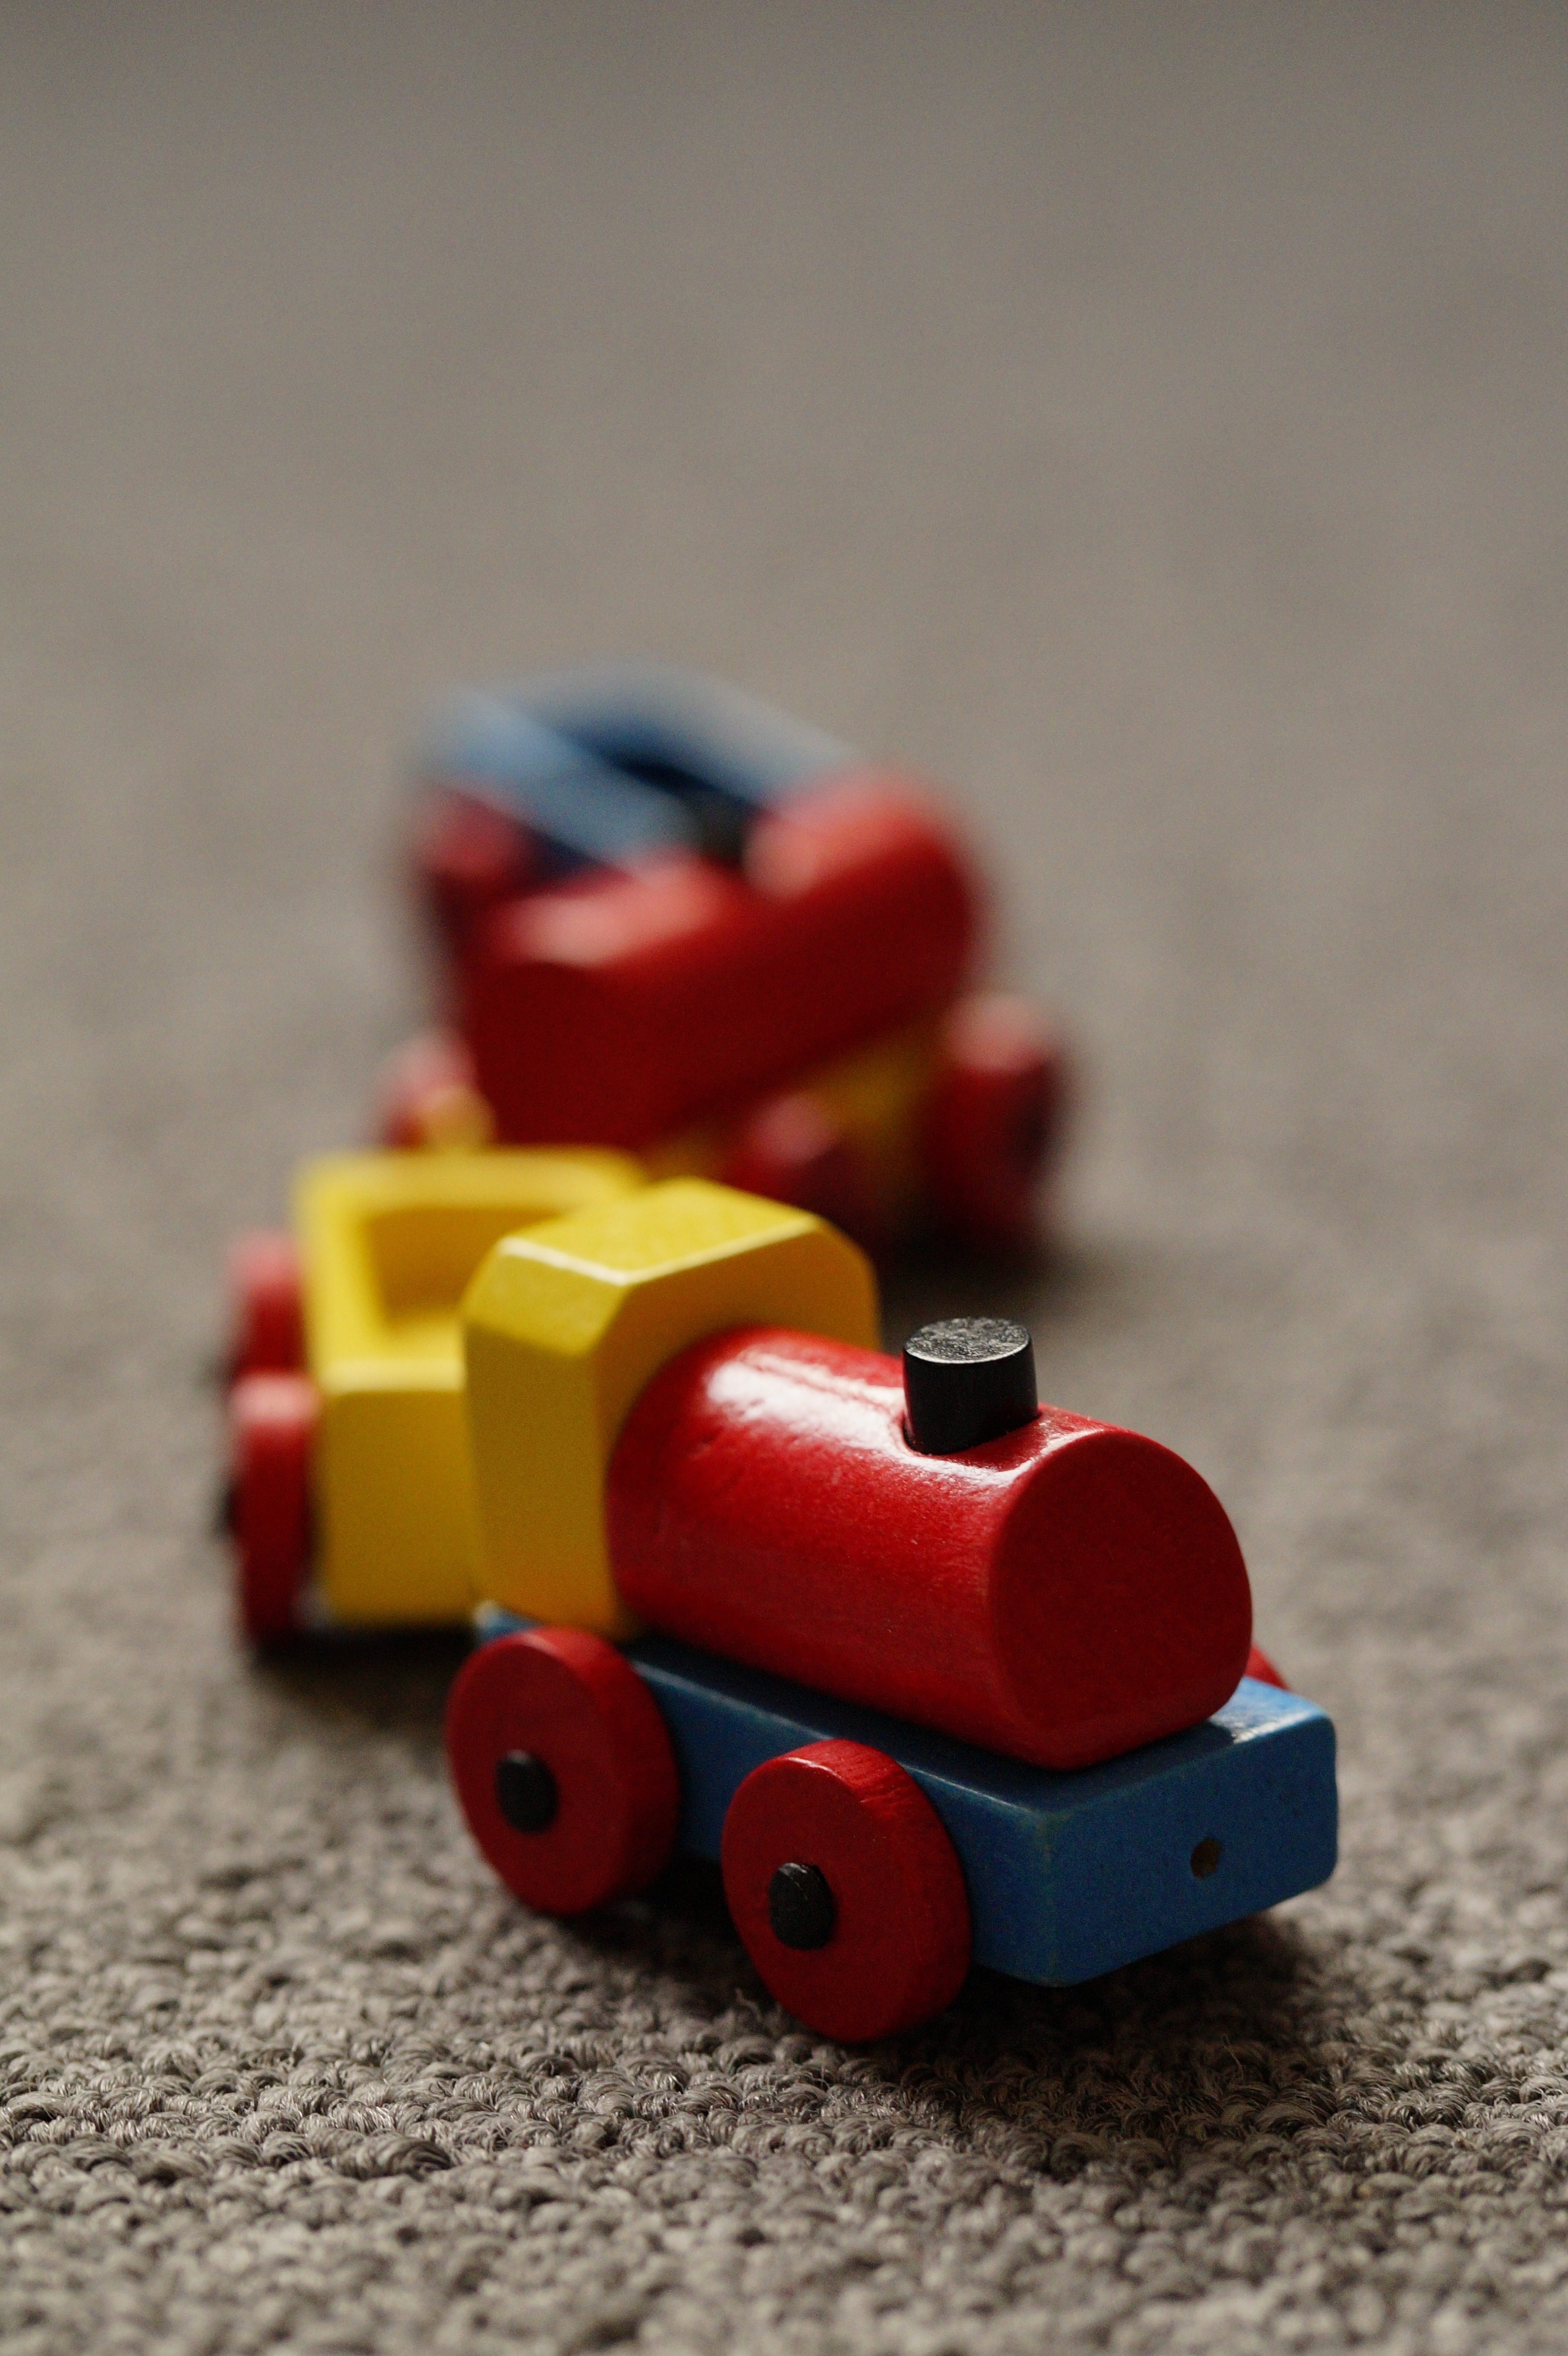 railway-play-train-red-child-colorful-toy-children-locomotive-toys-children%27s-room-wooden-railway-1110387.jpg